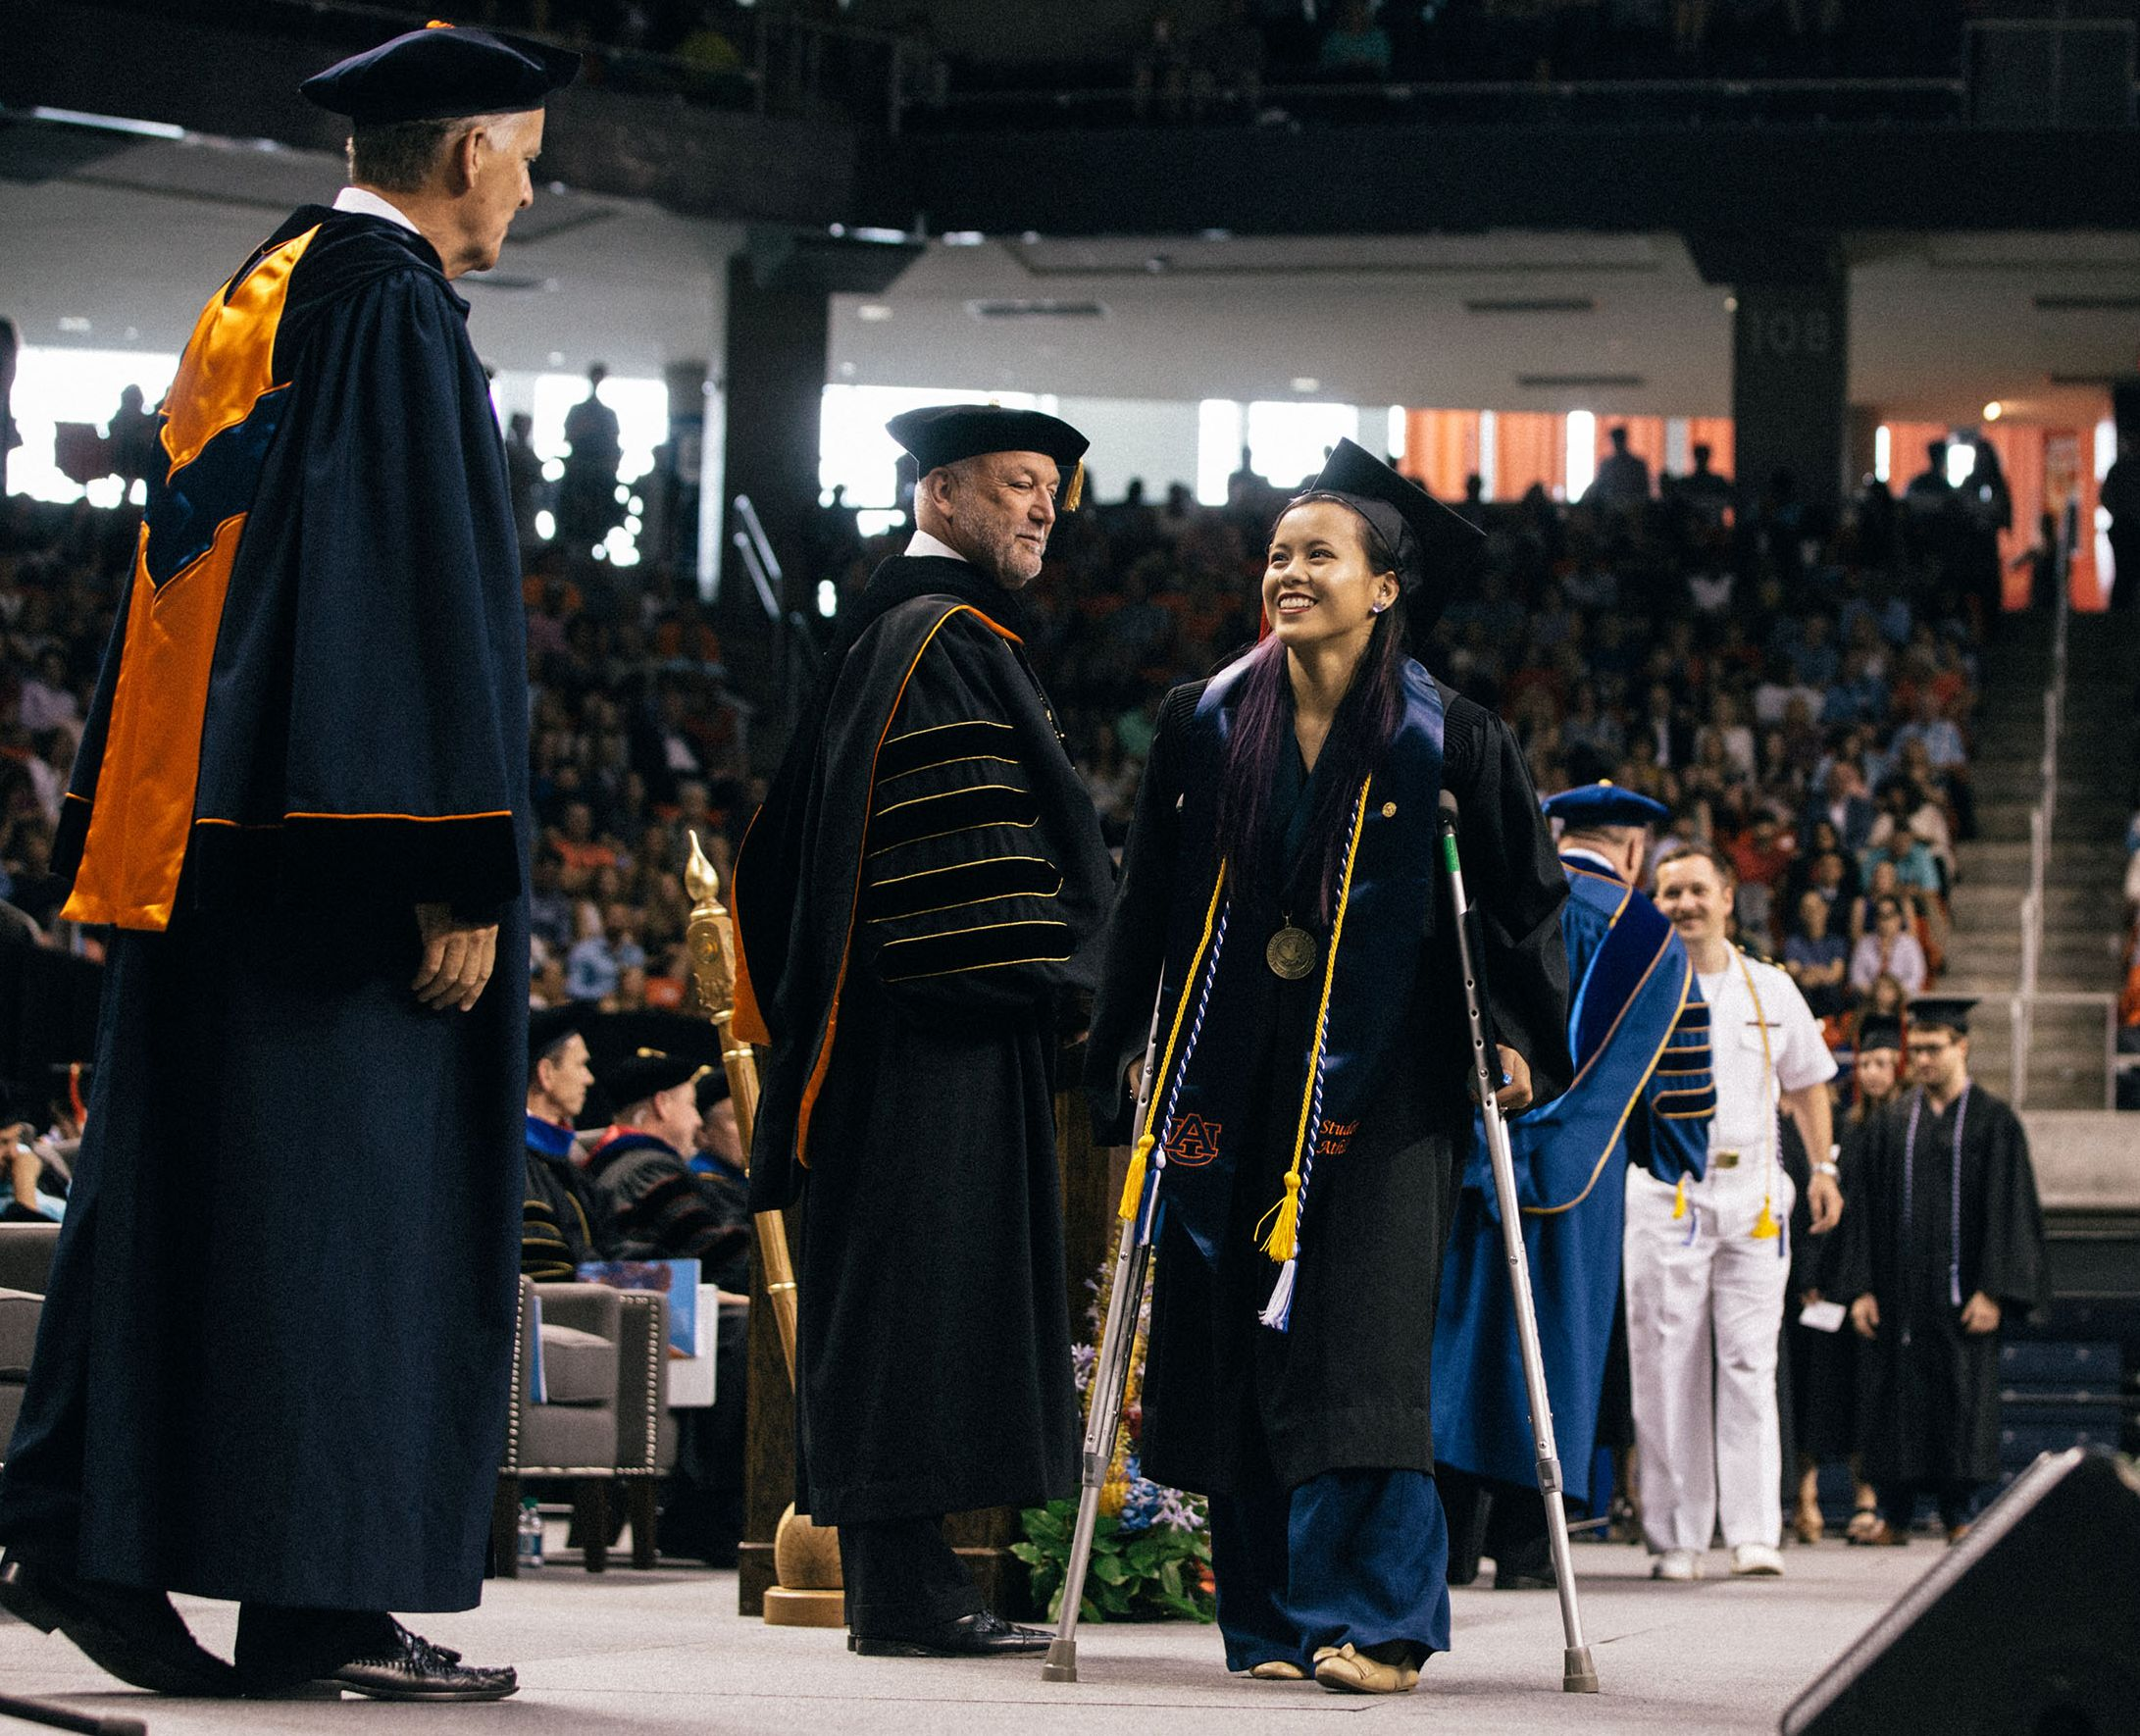 Four weeks after her injury, Sam Cerio walked at graduation with a pair of crutches. Her goal after that: walk unassisted down the aisle at her wedding.